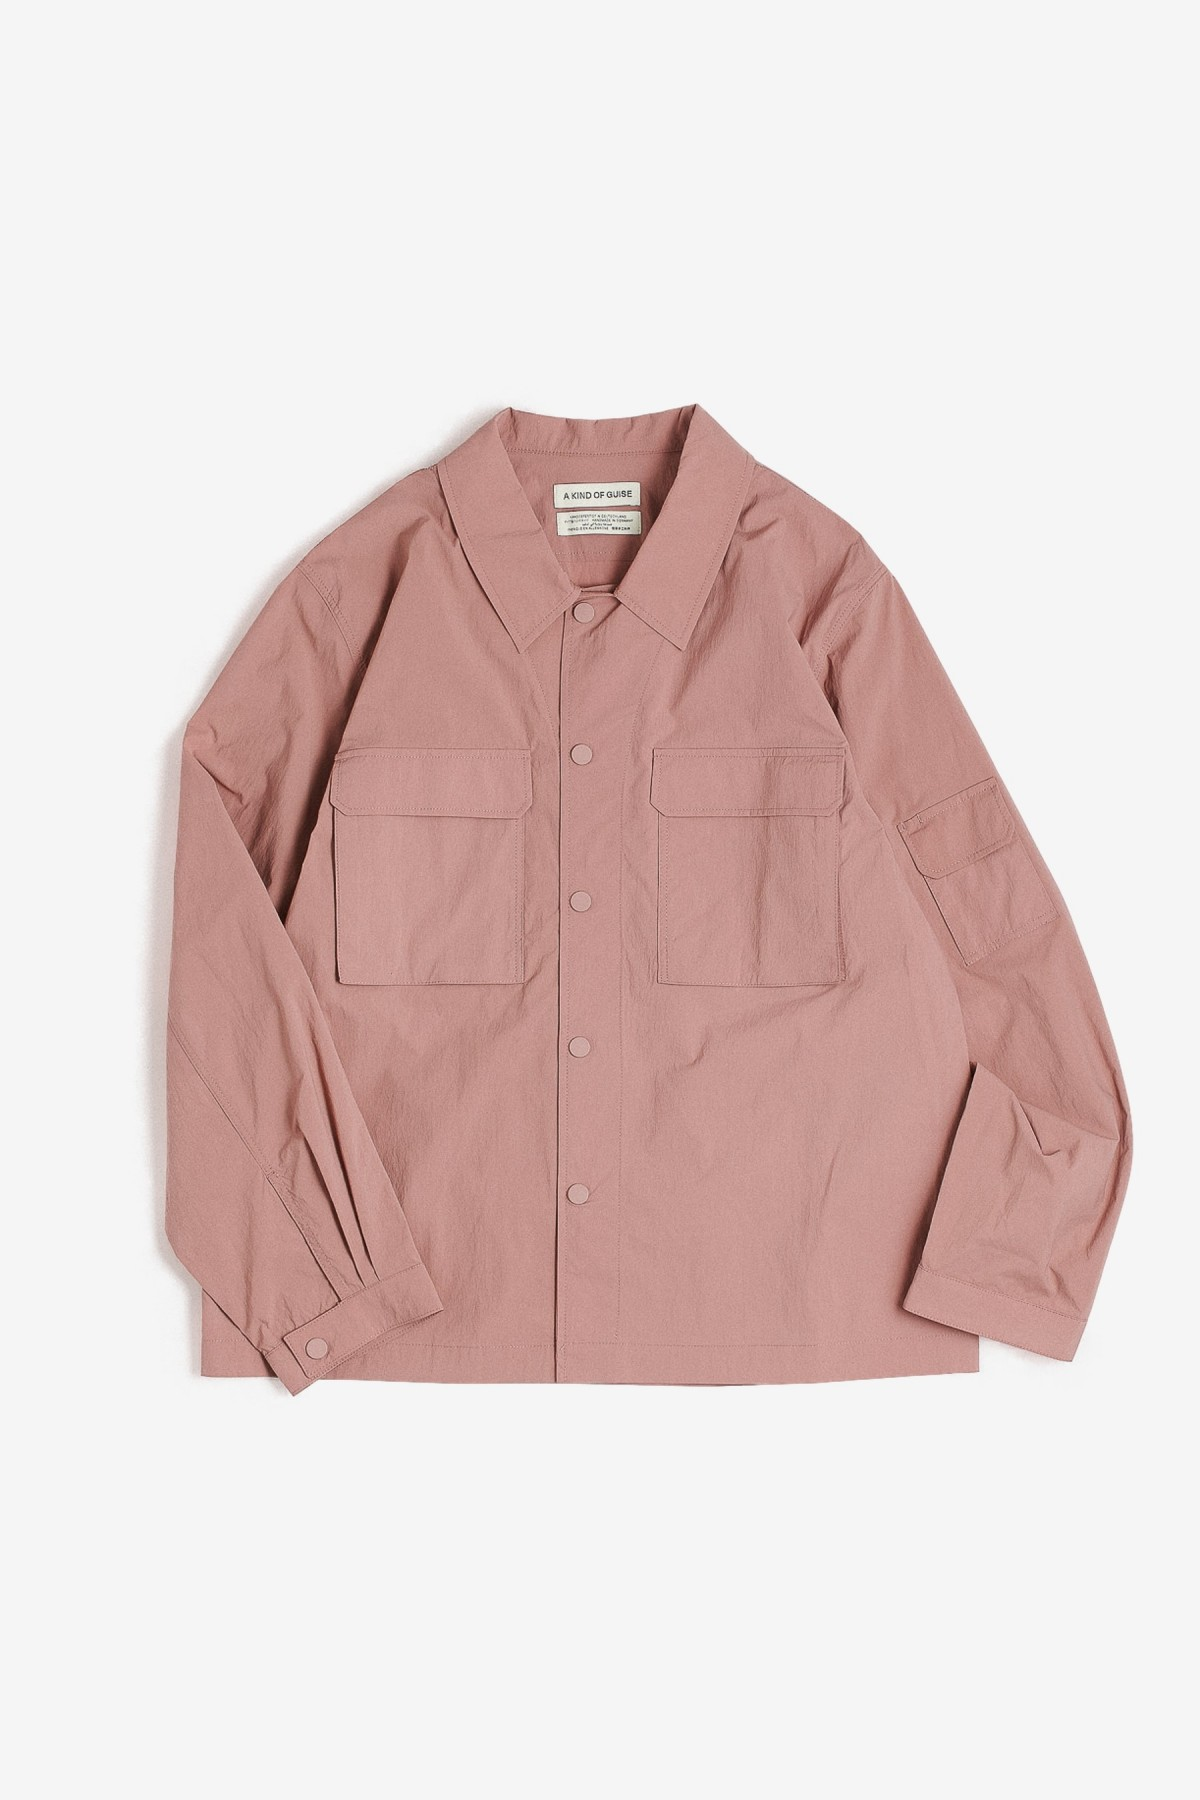 A Kind of Guise Clyde Shirt in Dusty Rose